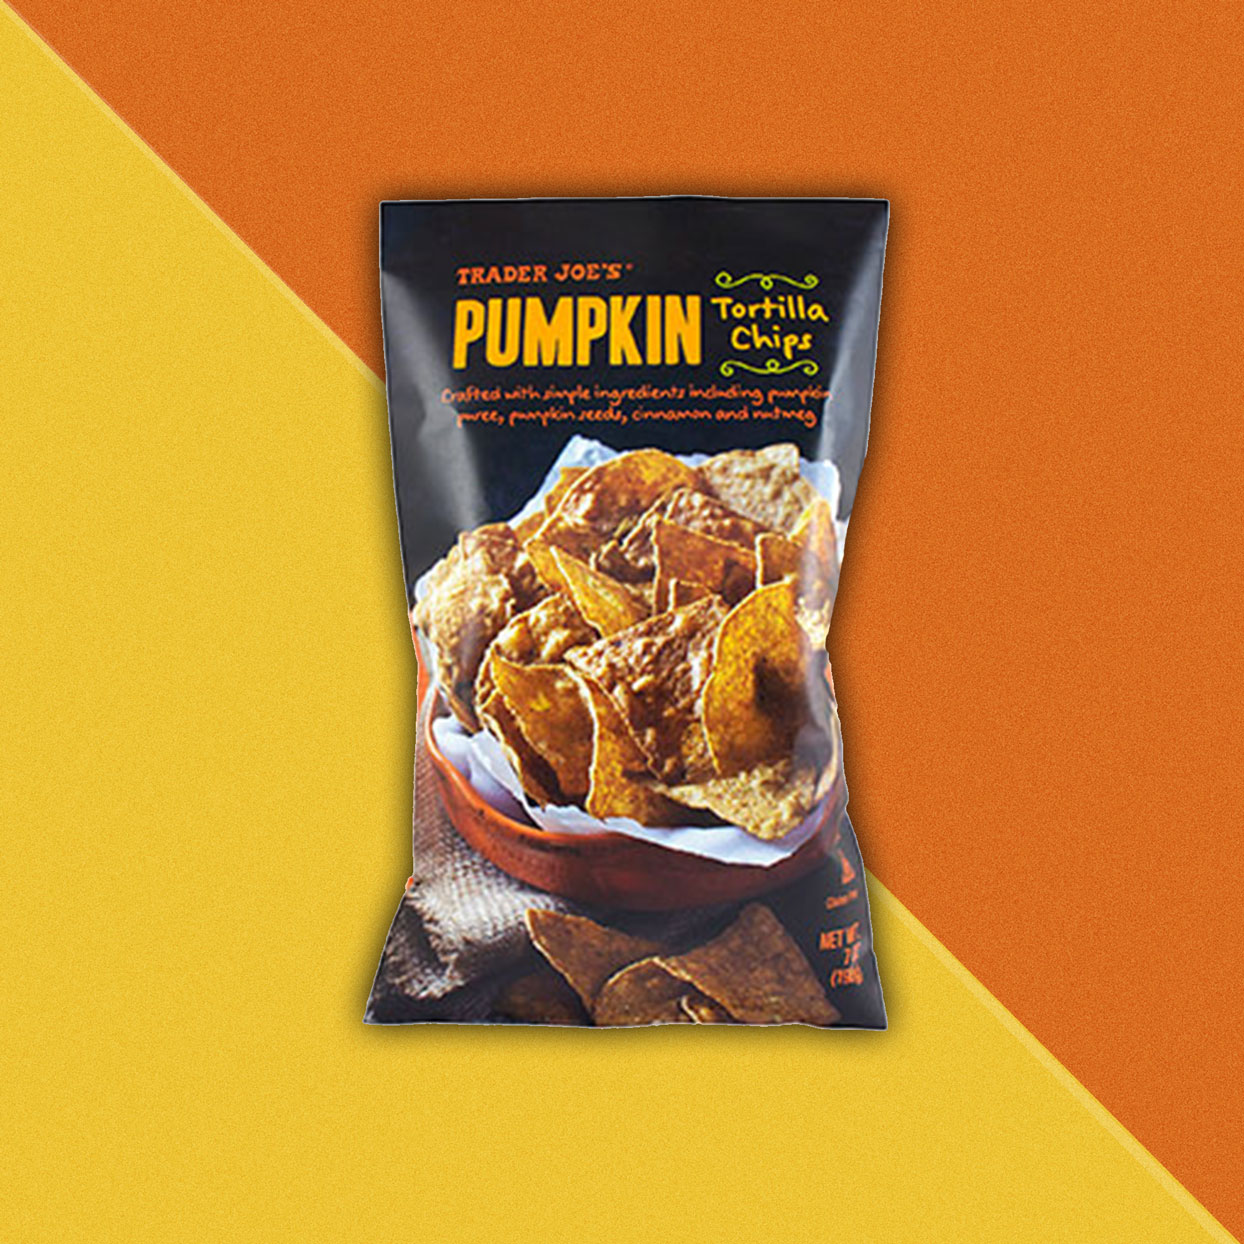 Pumpkin flavored tortilla chips